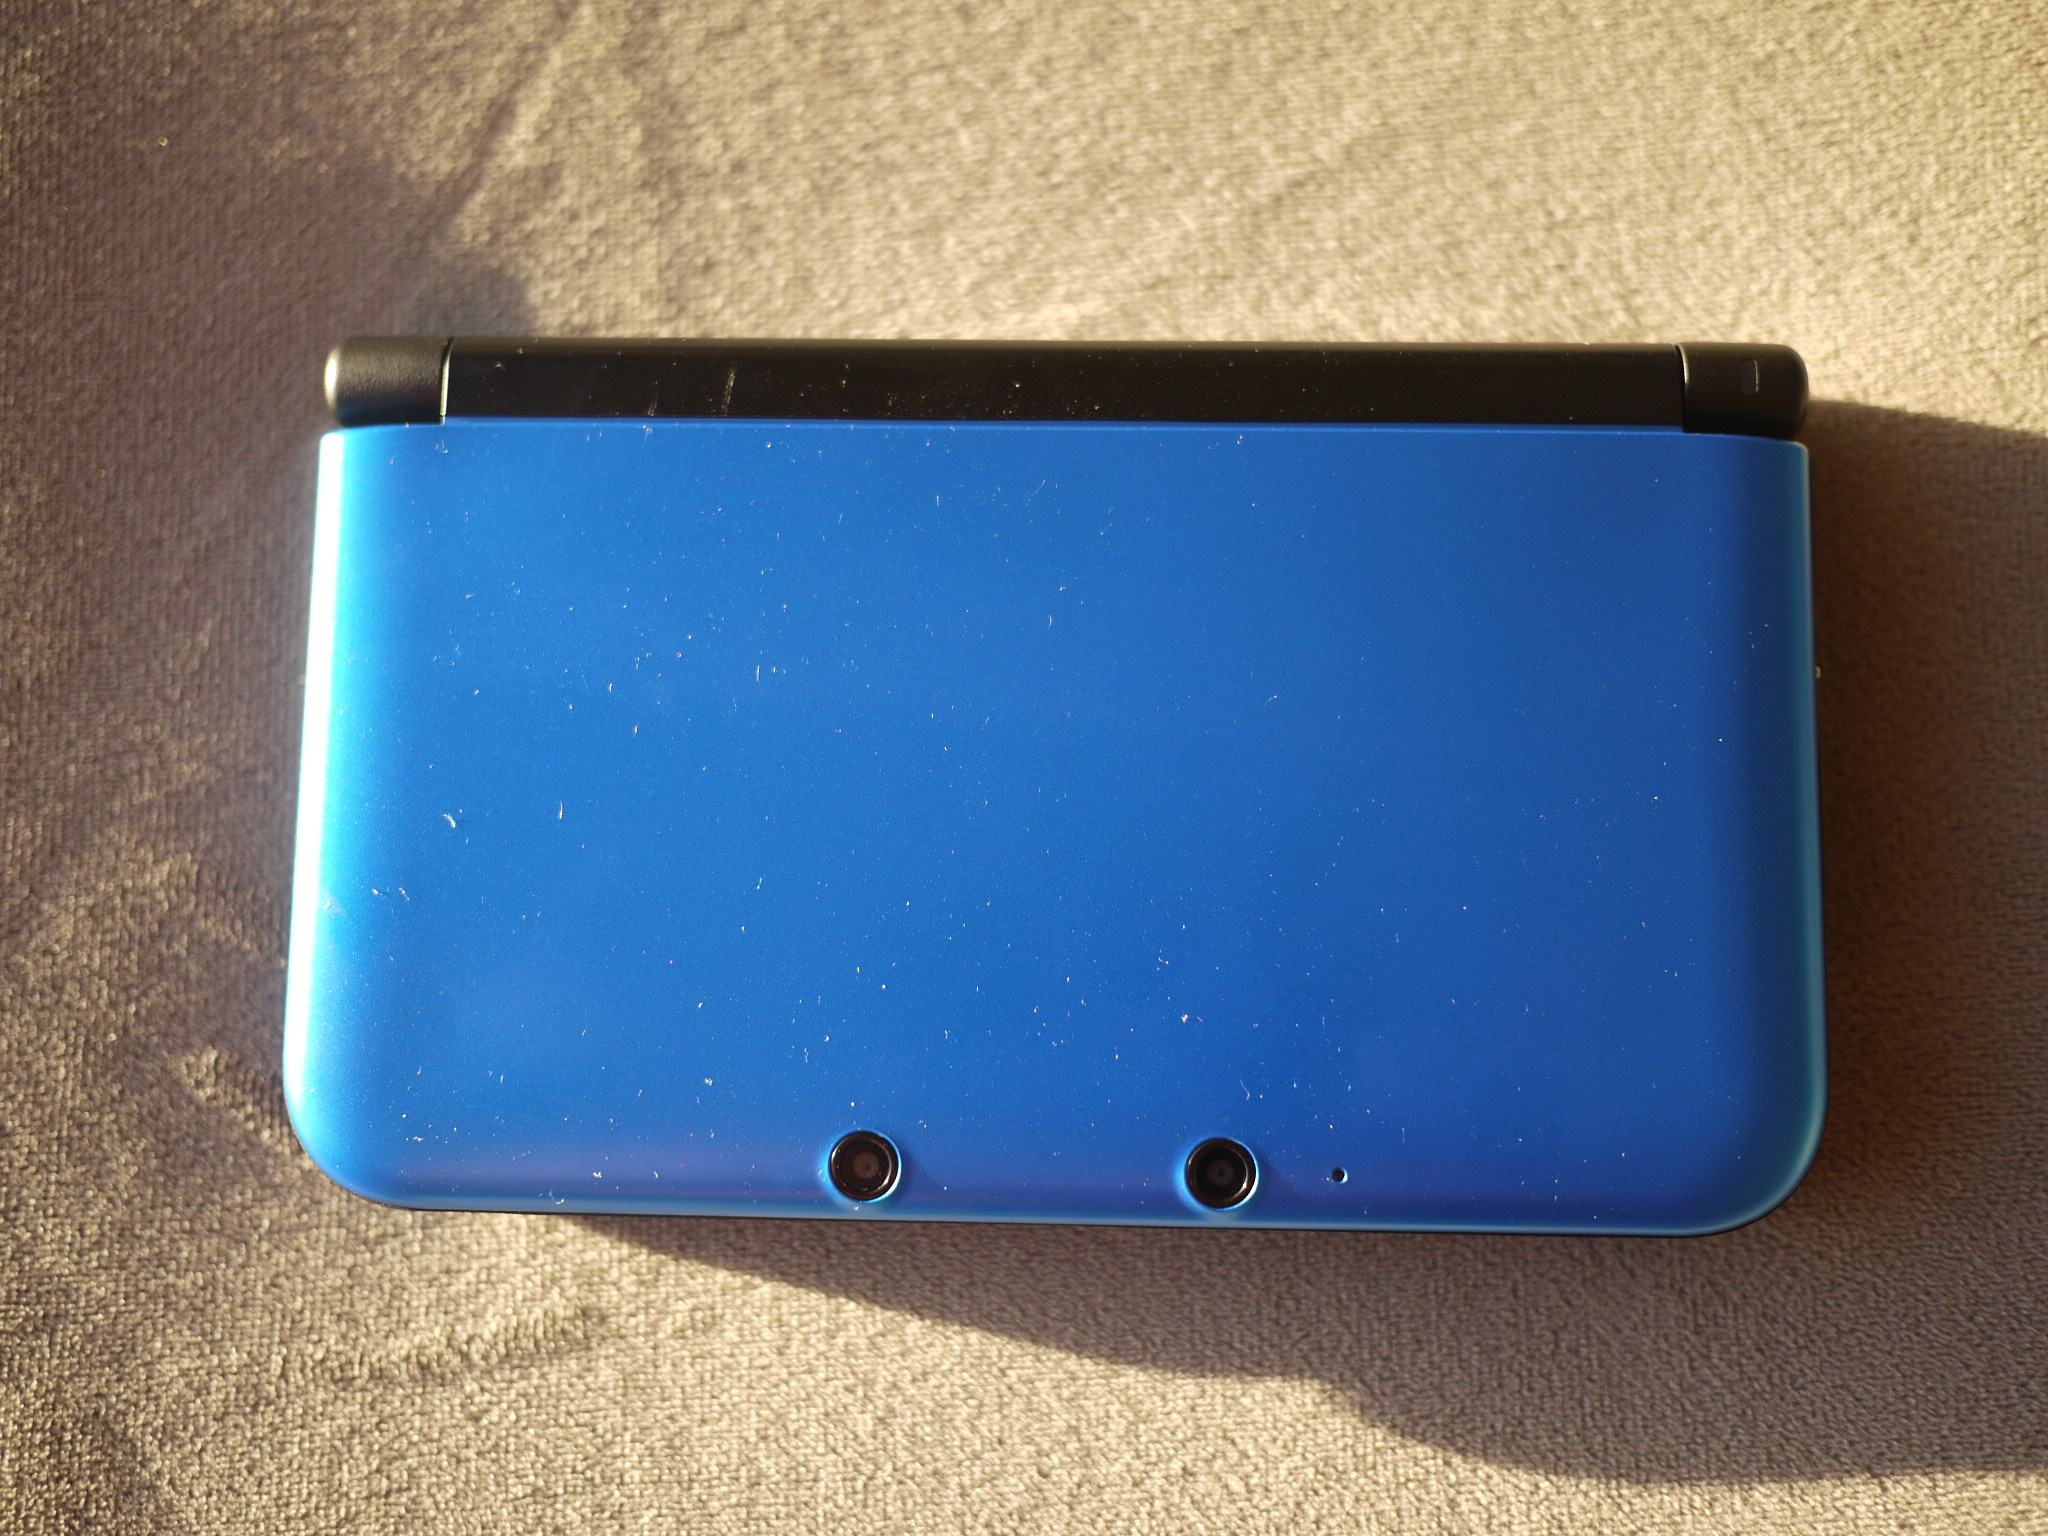 Nintendo 3ds Xl Games The 3ds xl is more than just a